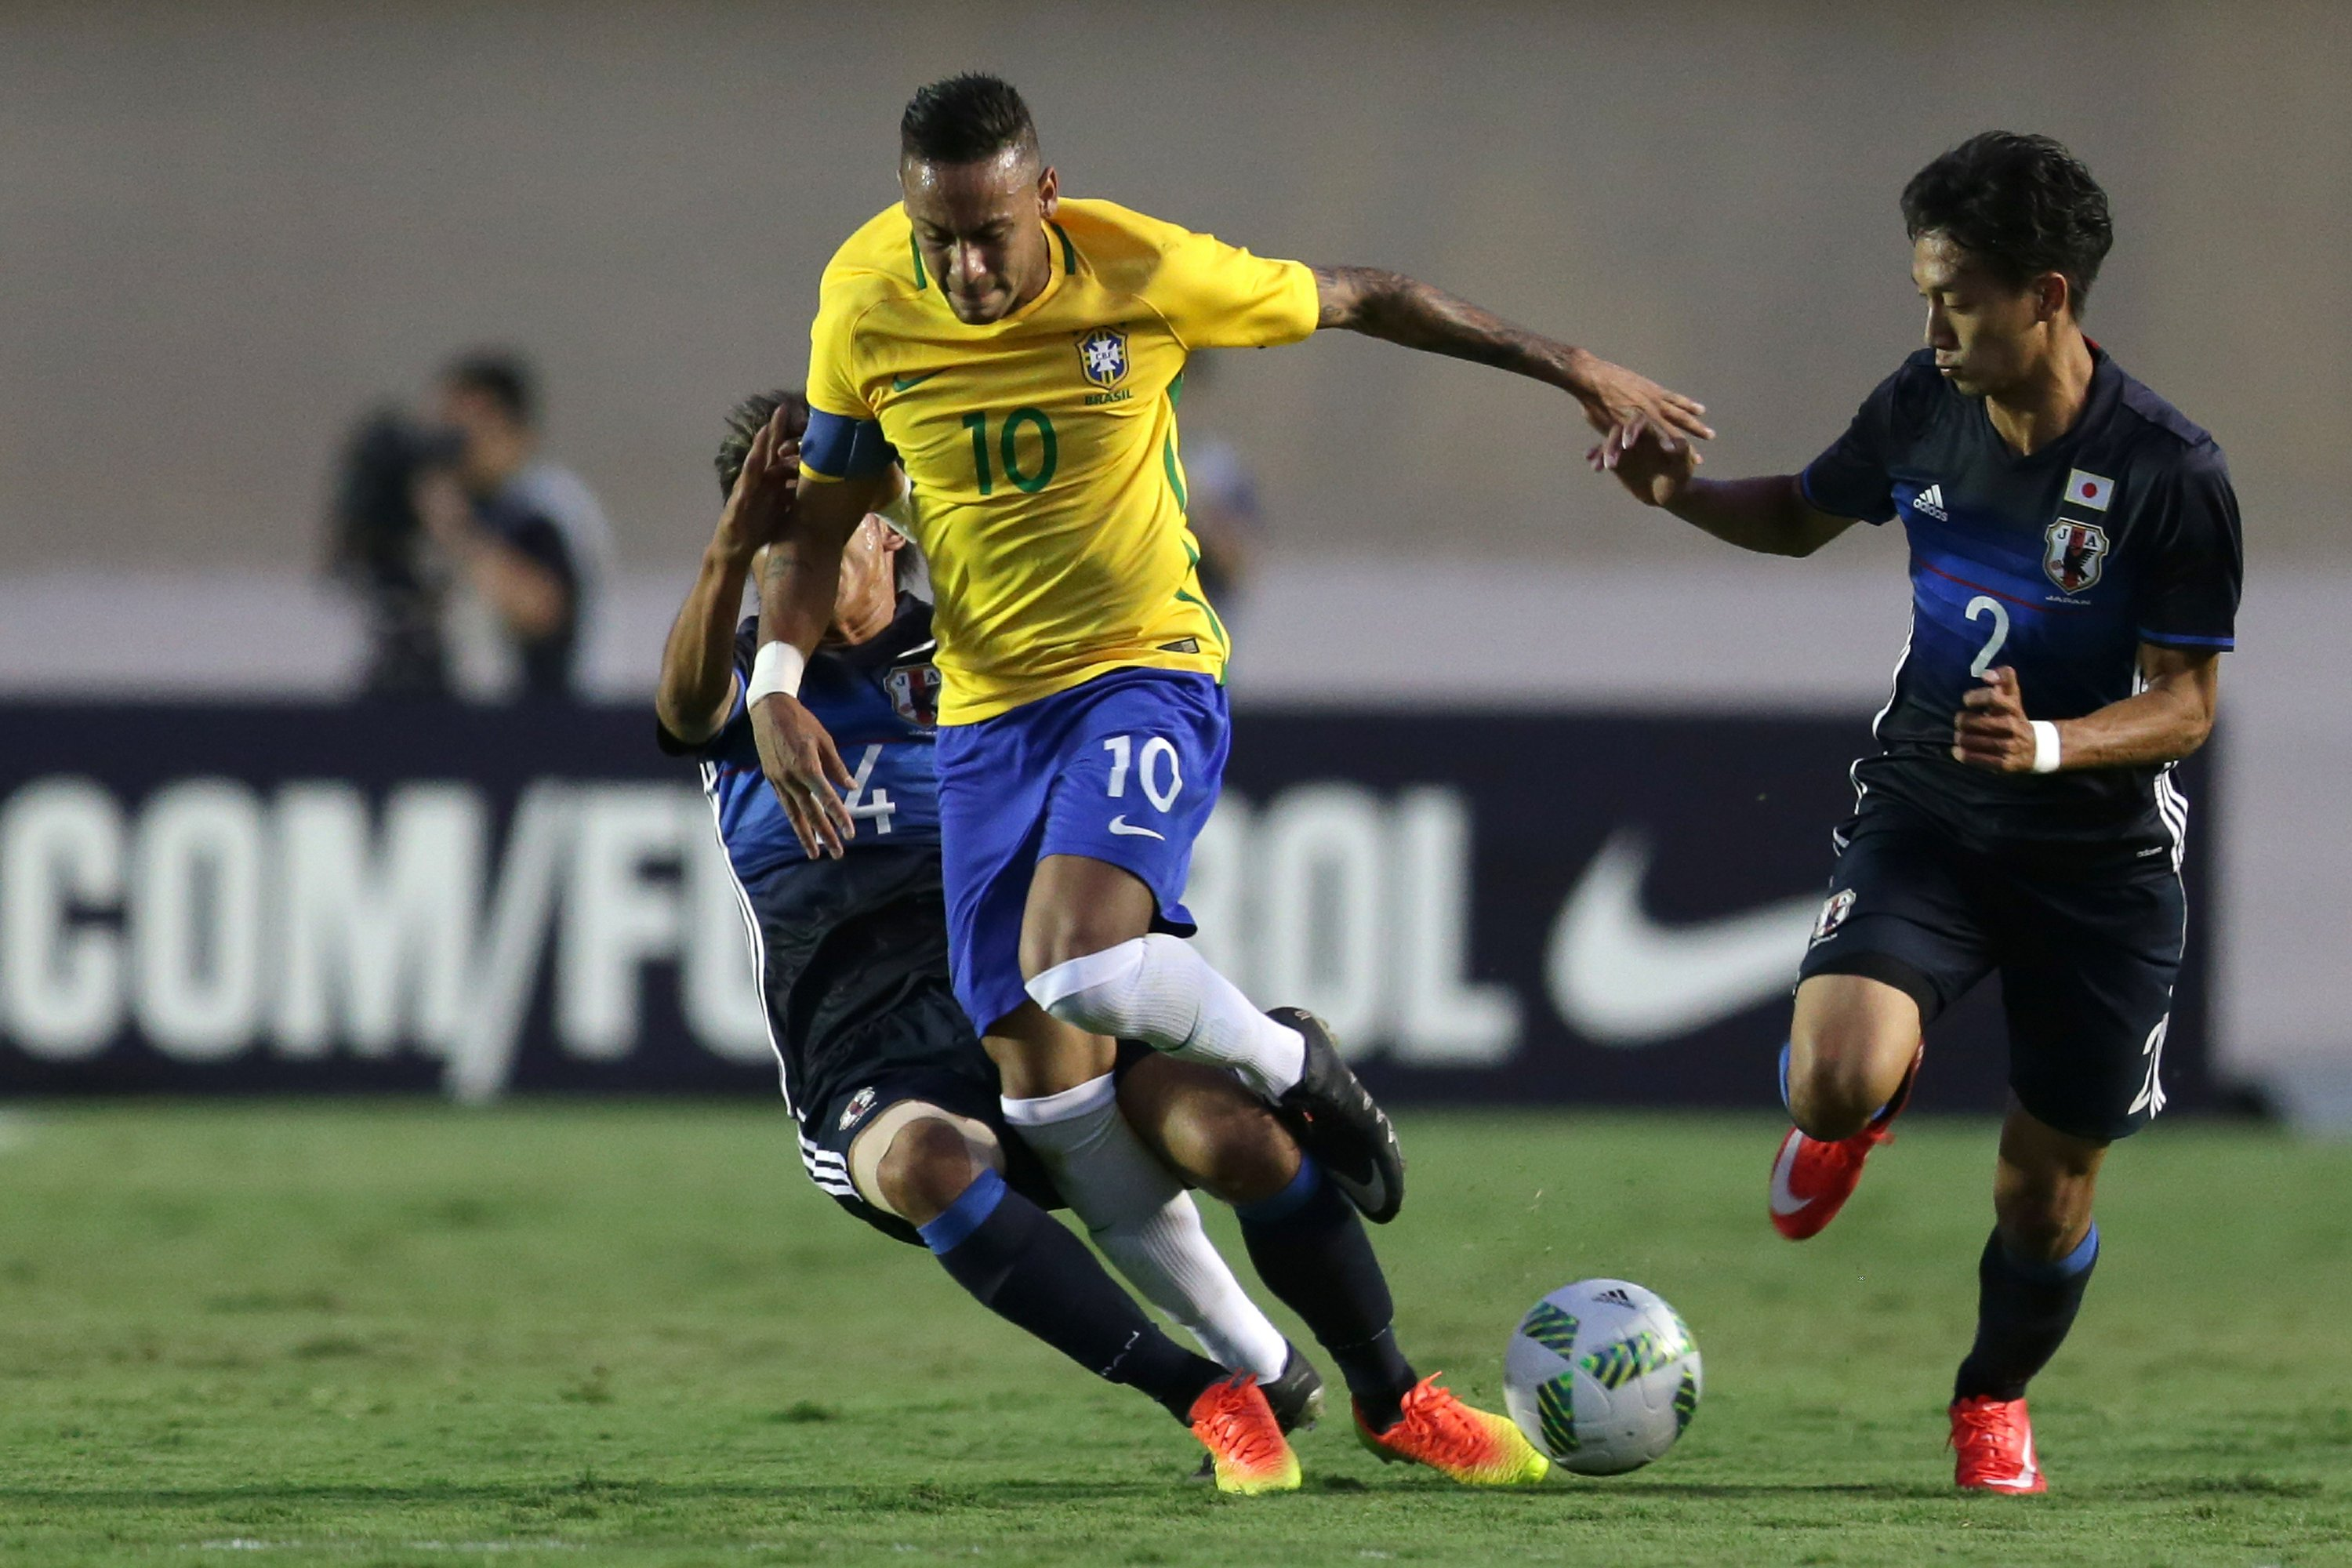 The Latest: Brazil replaces goalkeeper after injury